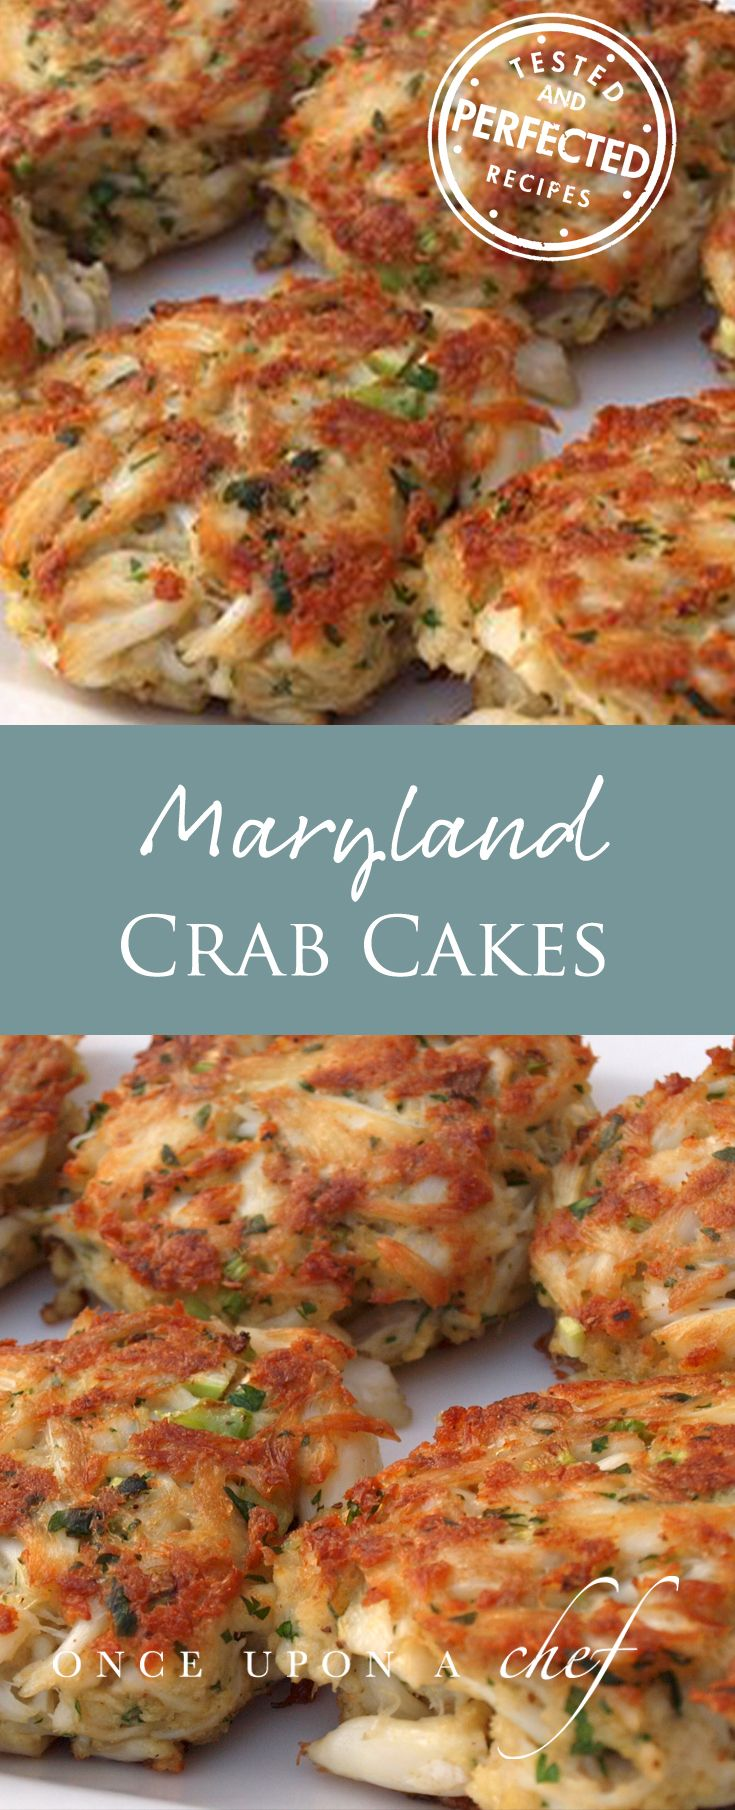 Maryland Crab Cakes with Quick Tartar Sauce | Recipe | Maryland crab ...